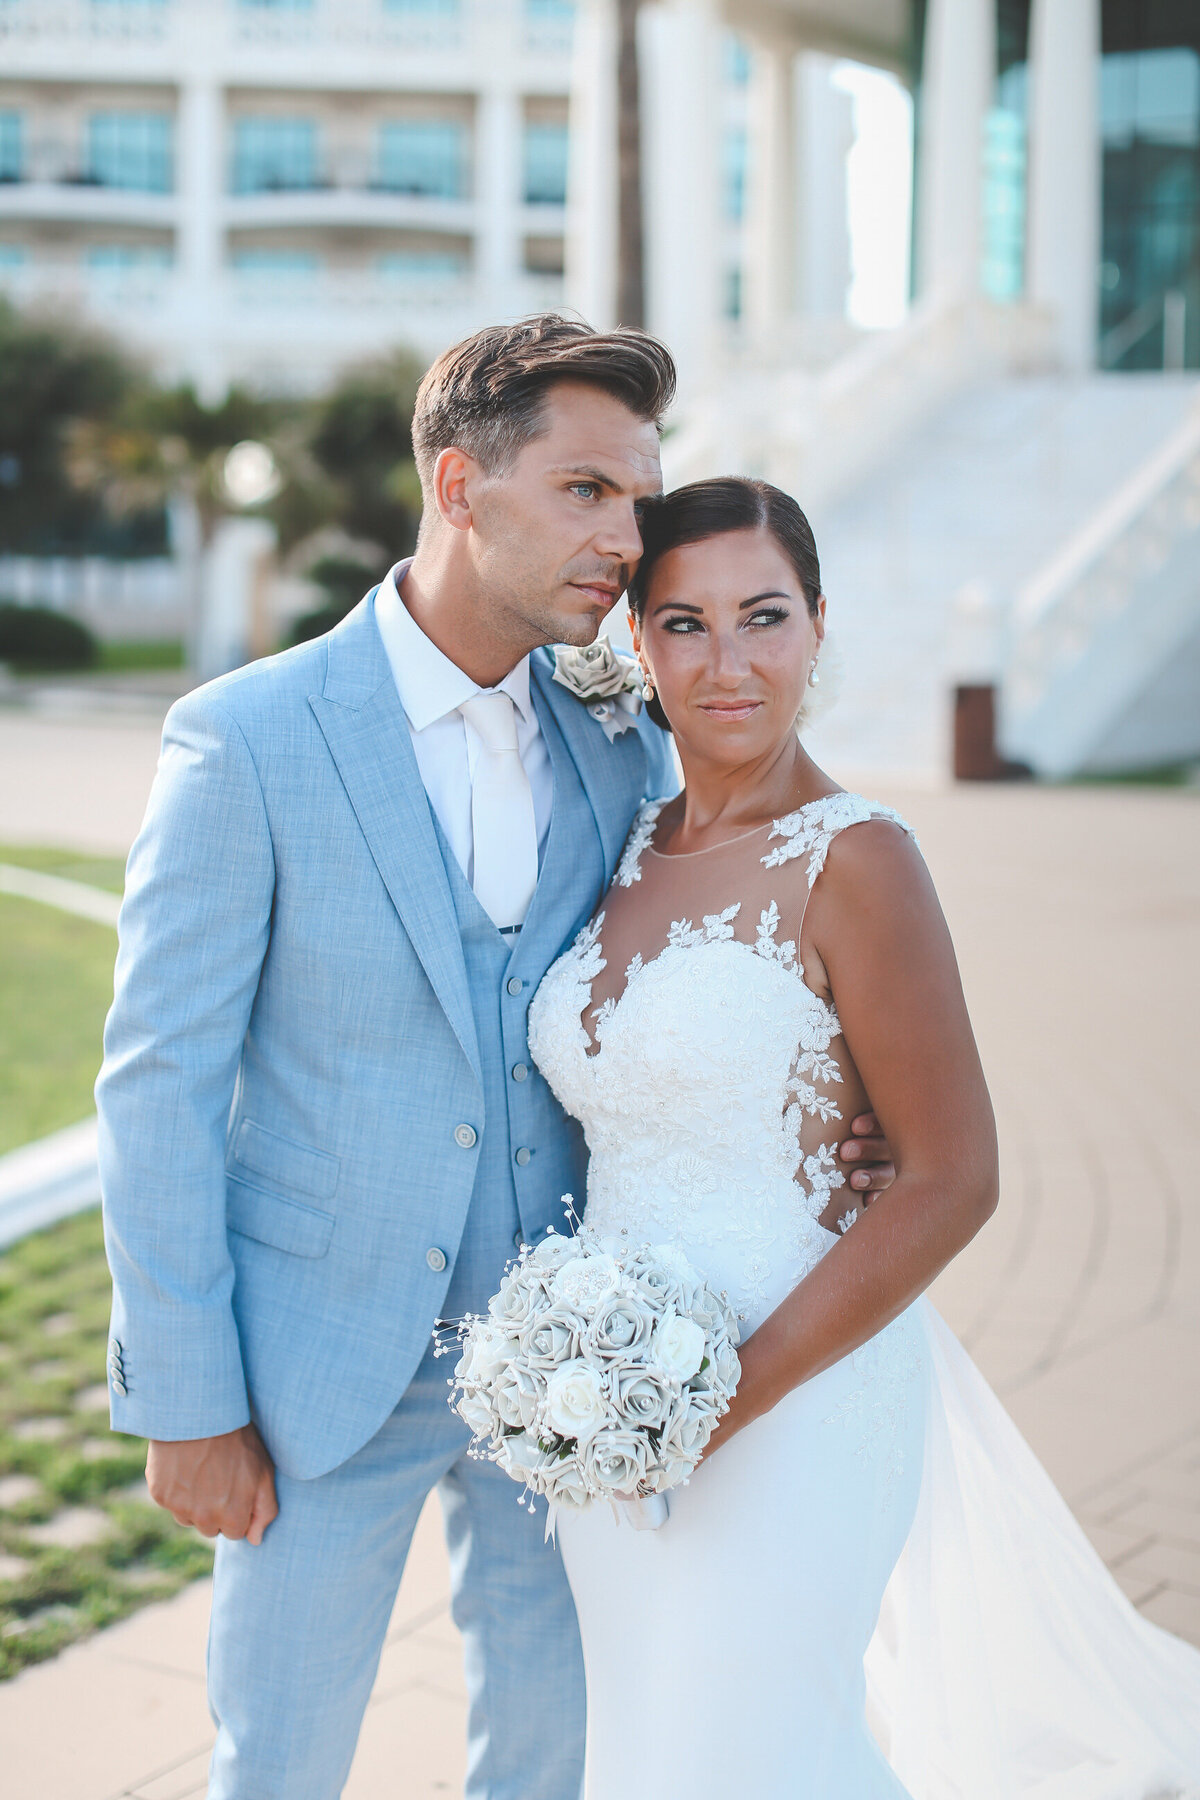 DESTINATION-WEDDING-SPAIN-HANNAH-MACGREGOR-PHOTOGRAPHY-0029